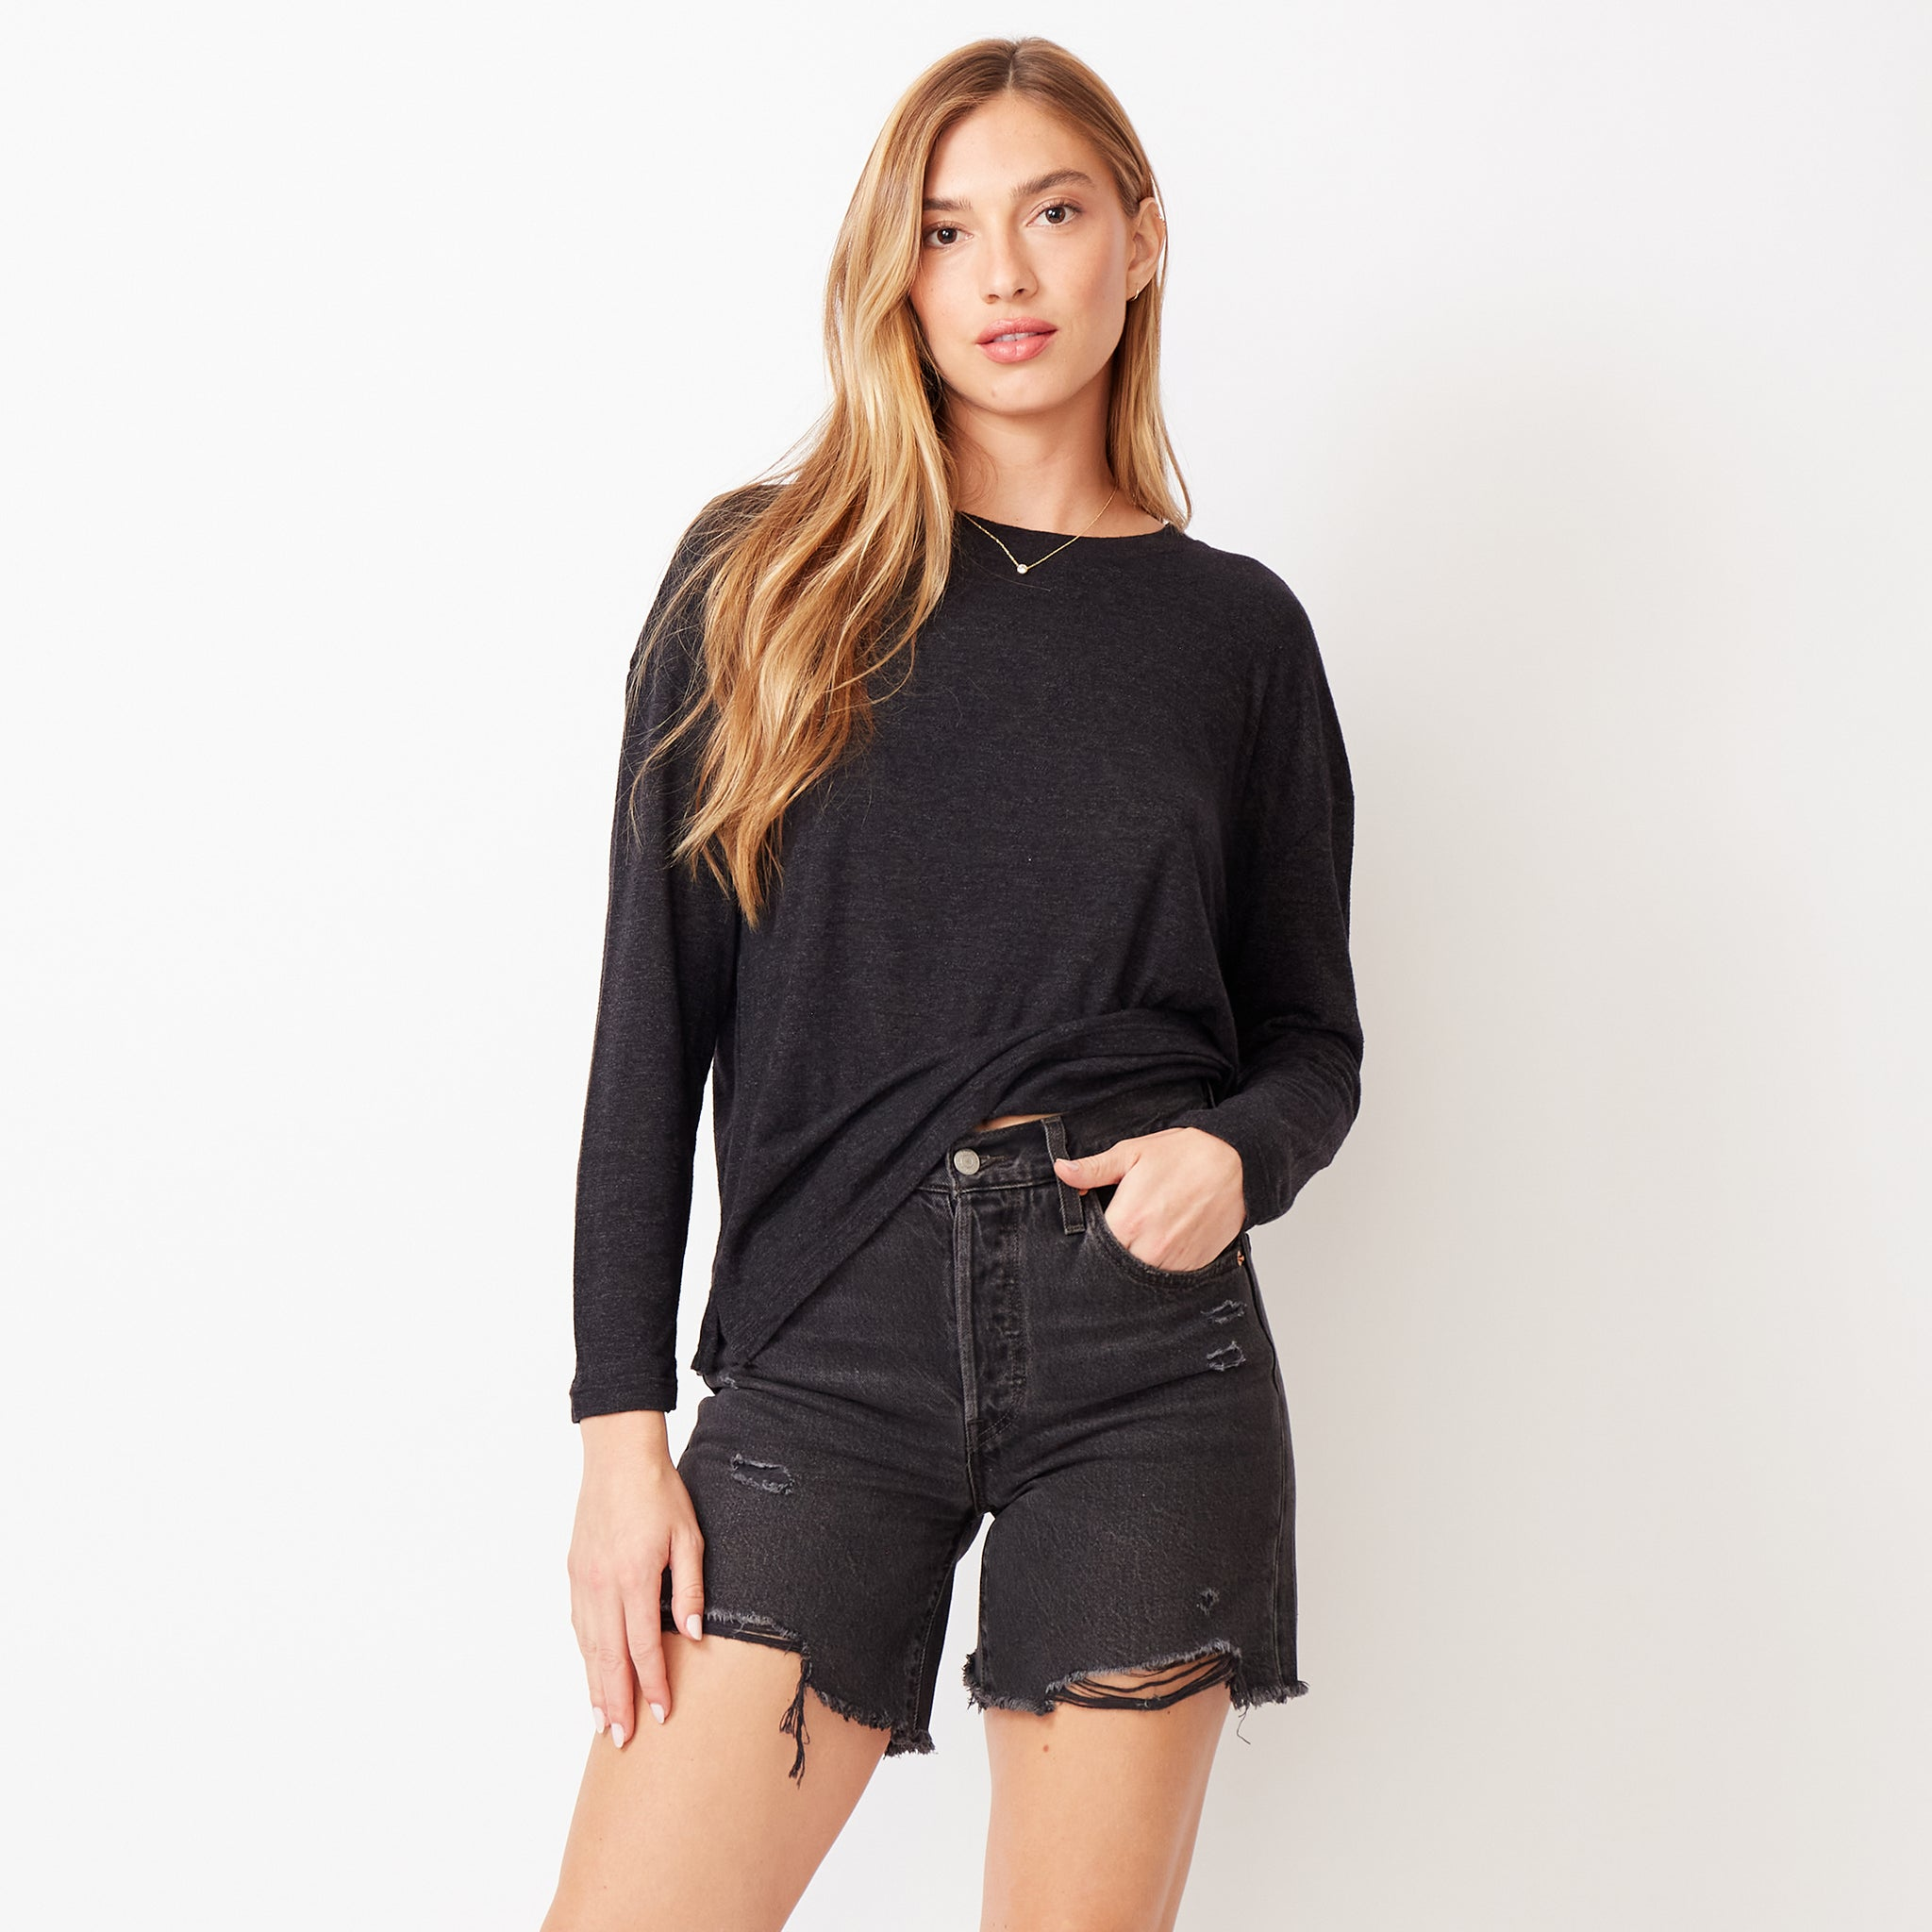 Textured Tri-Blend Slouchy Top